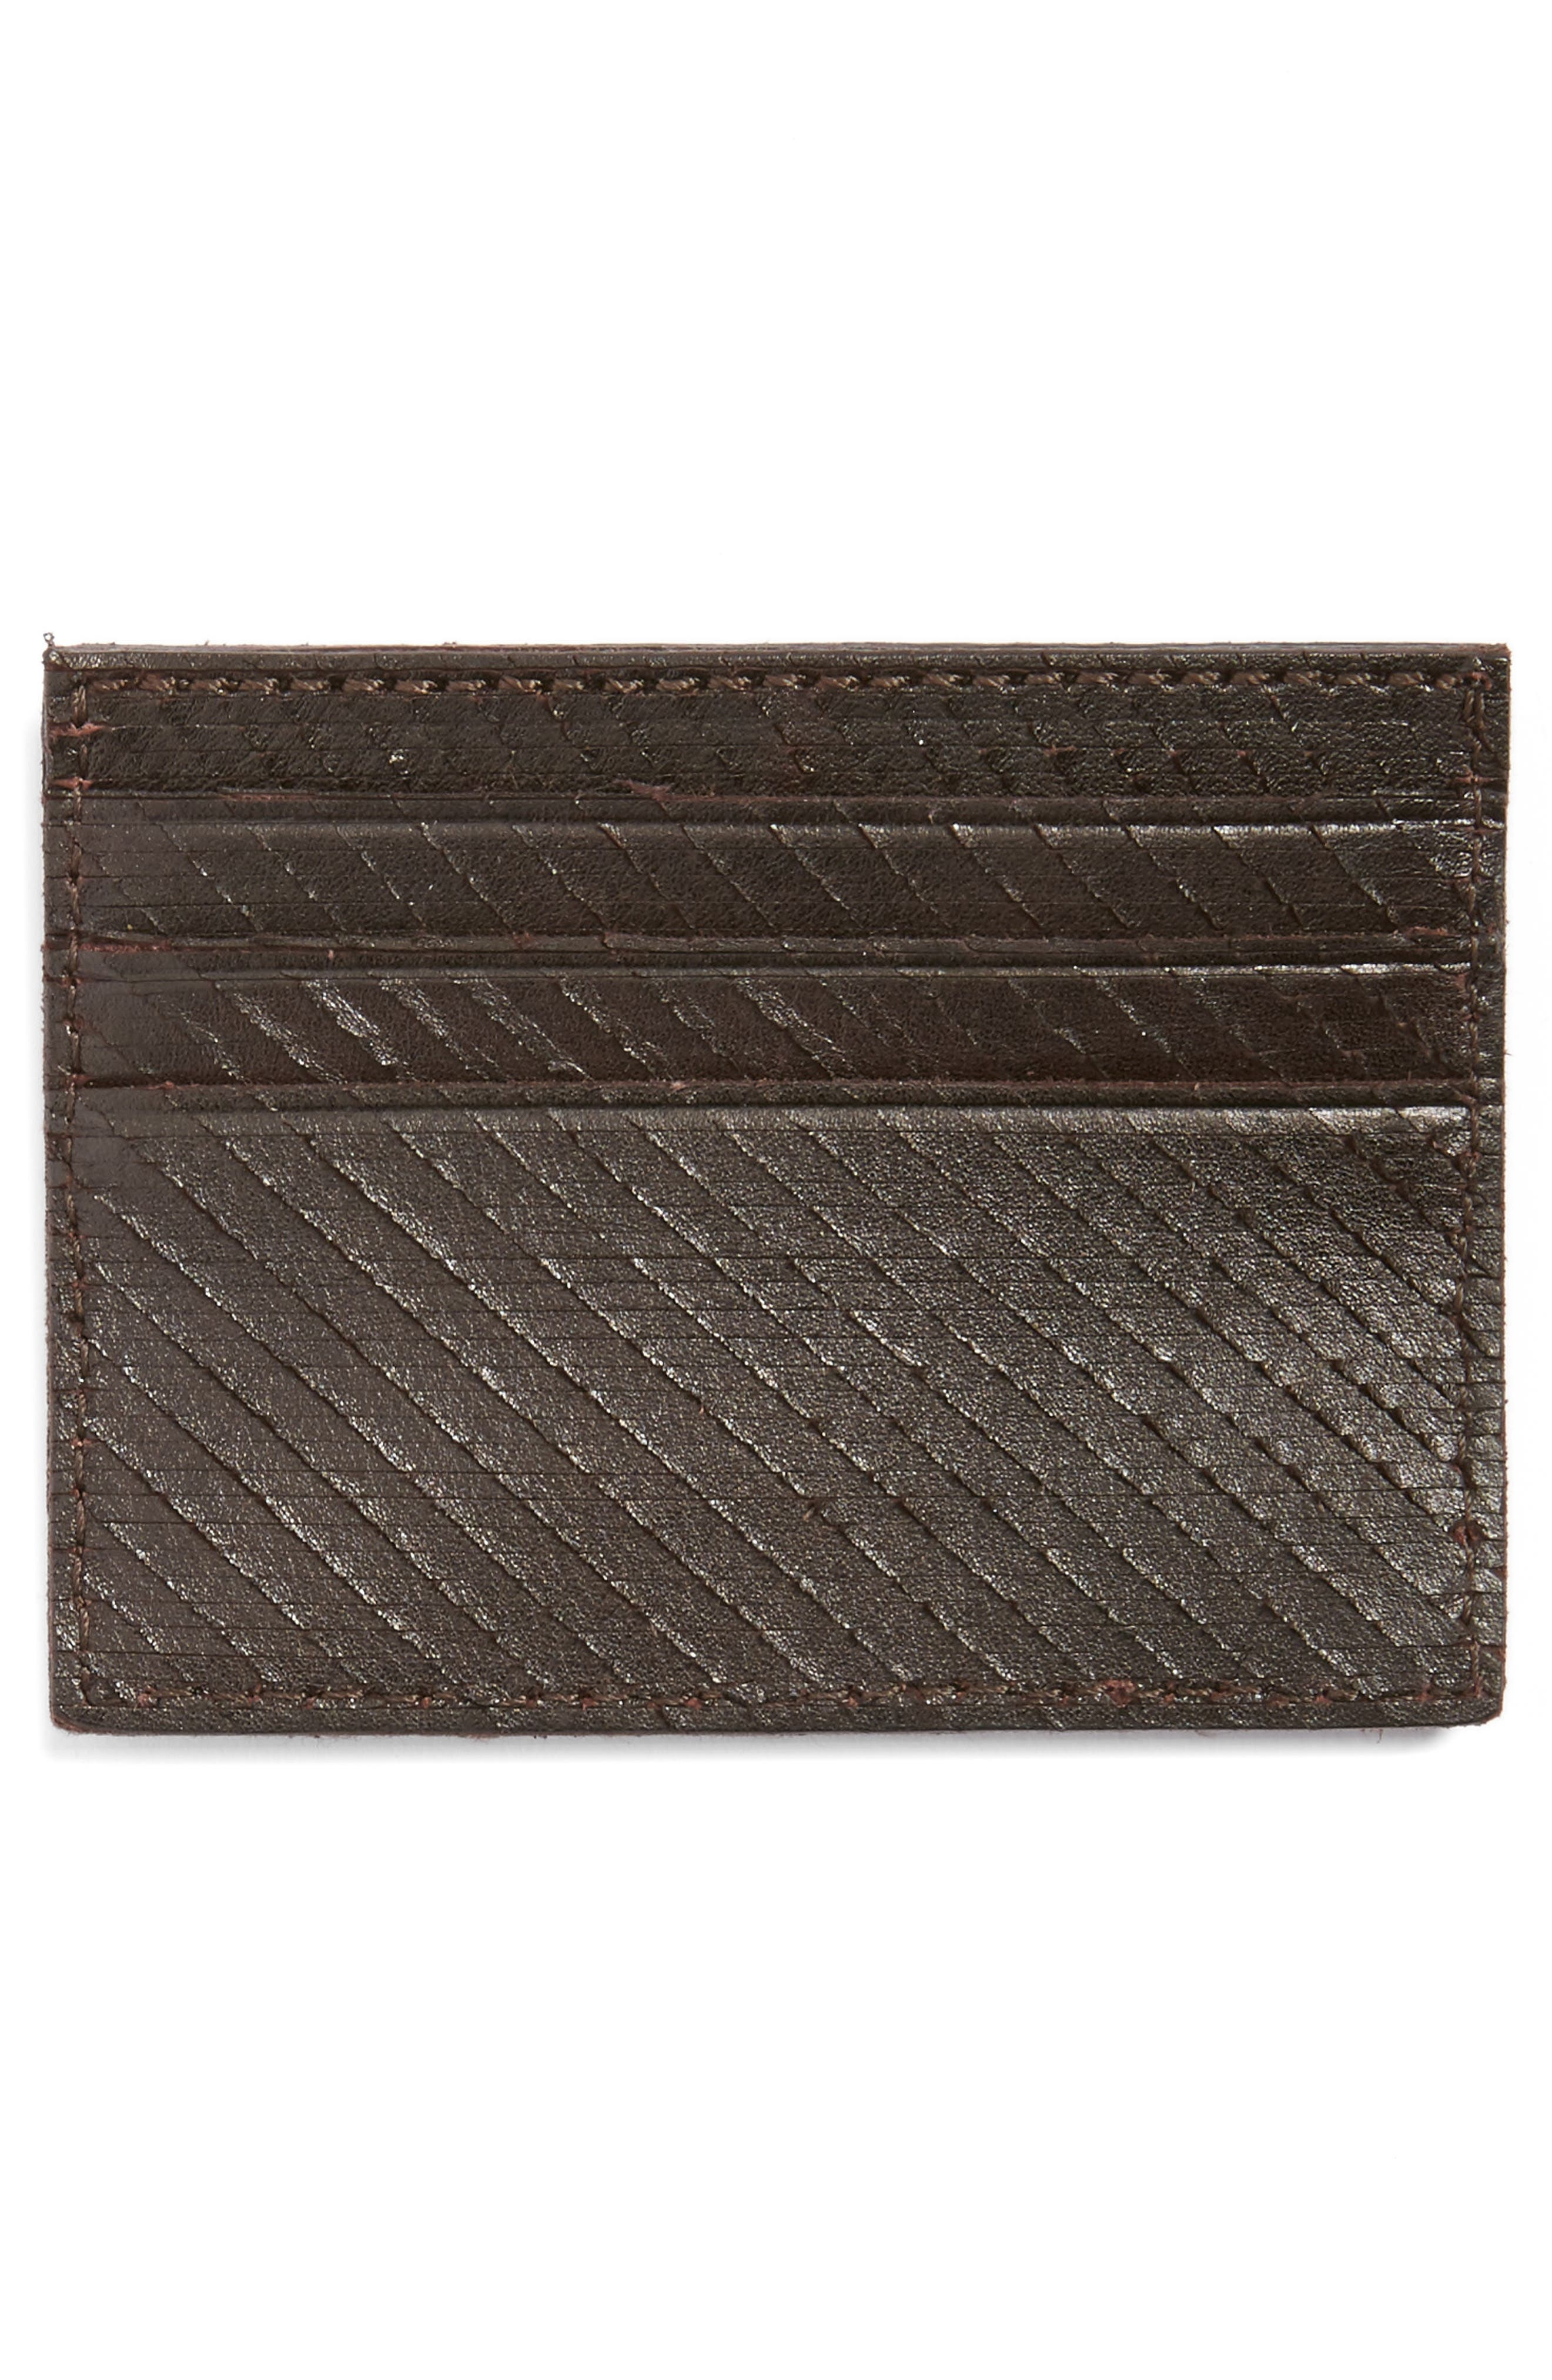 Leather Card Case,                             Alternate thumbnail 2, color,                             Chocolate